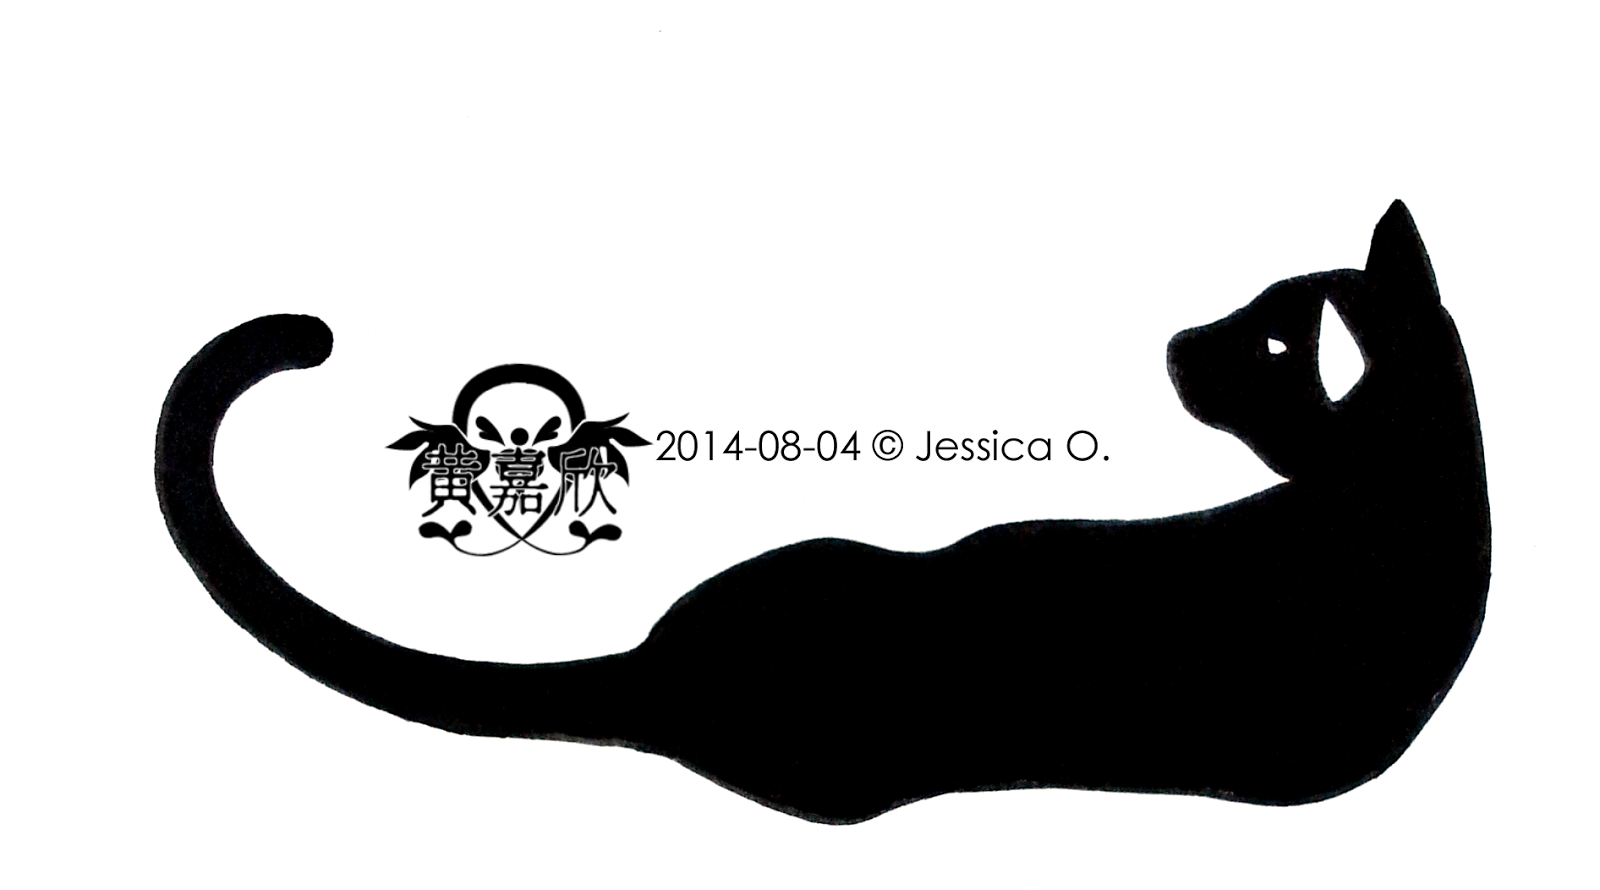 Vintage Cat Silhouette Tattoo Hd Wallpapers